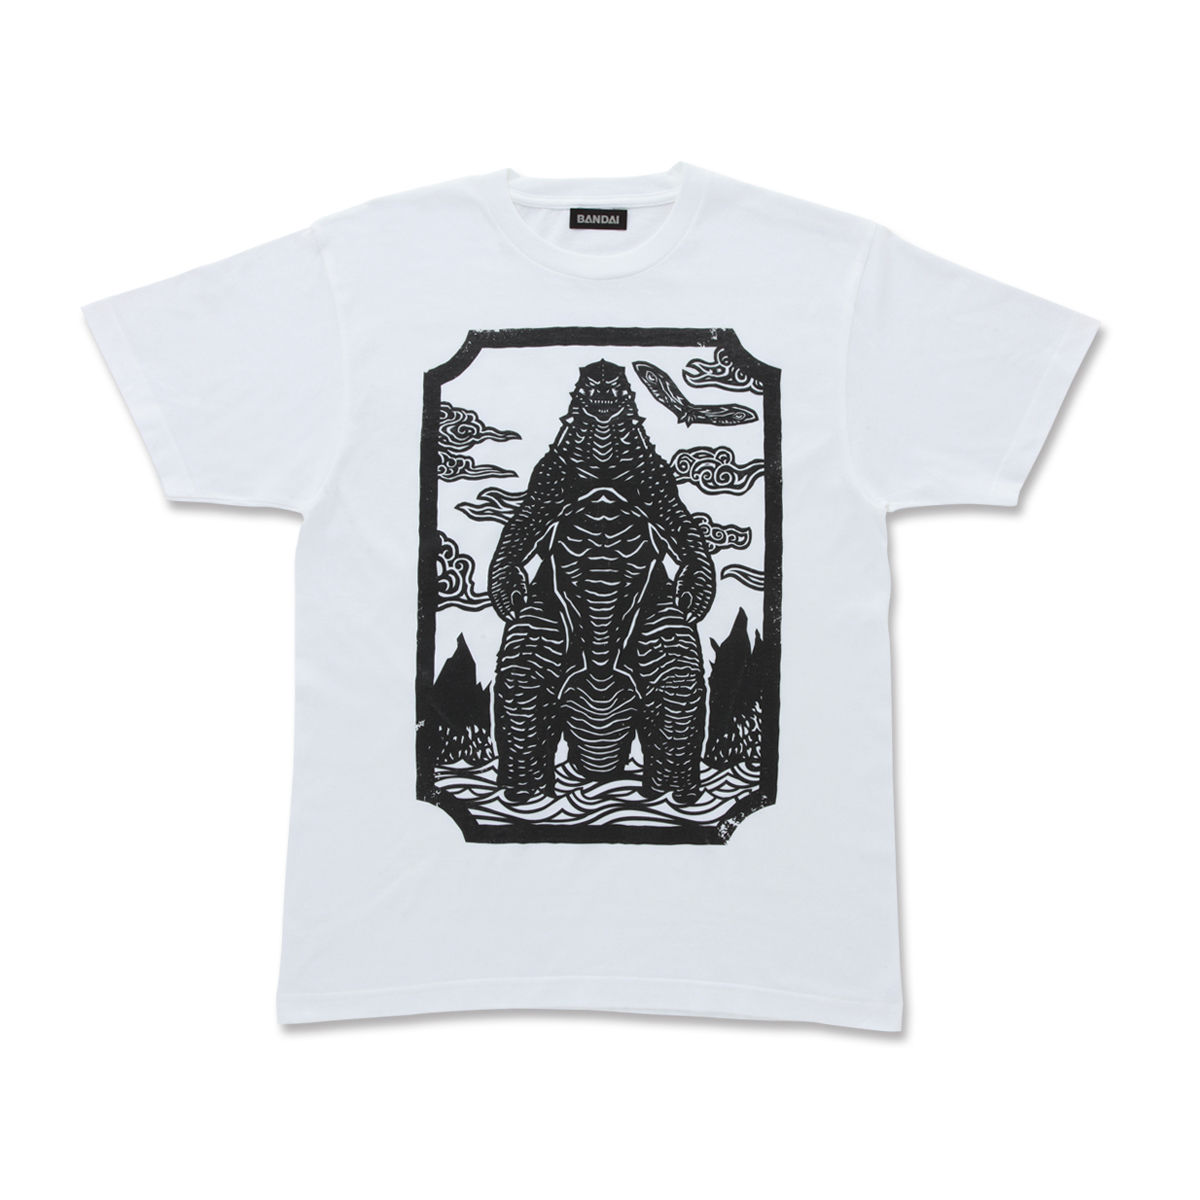 Godzilla: King of the Monsters - Japanese Poster Design T-shirt